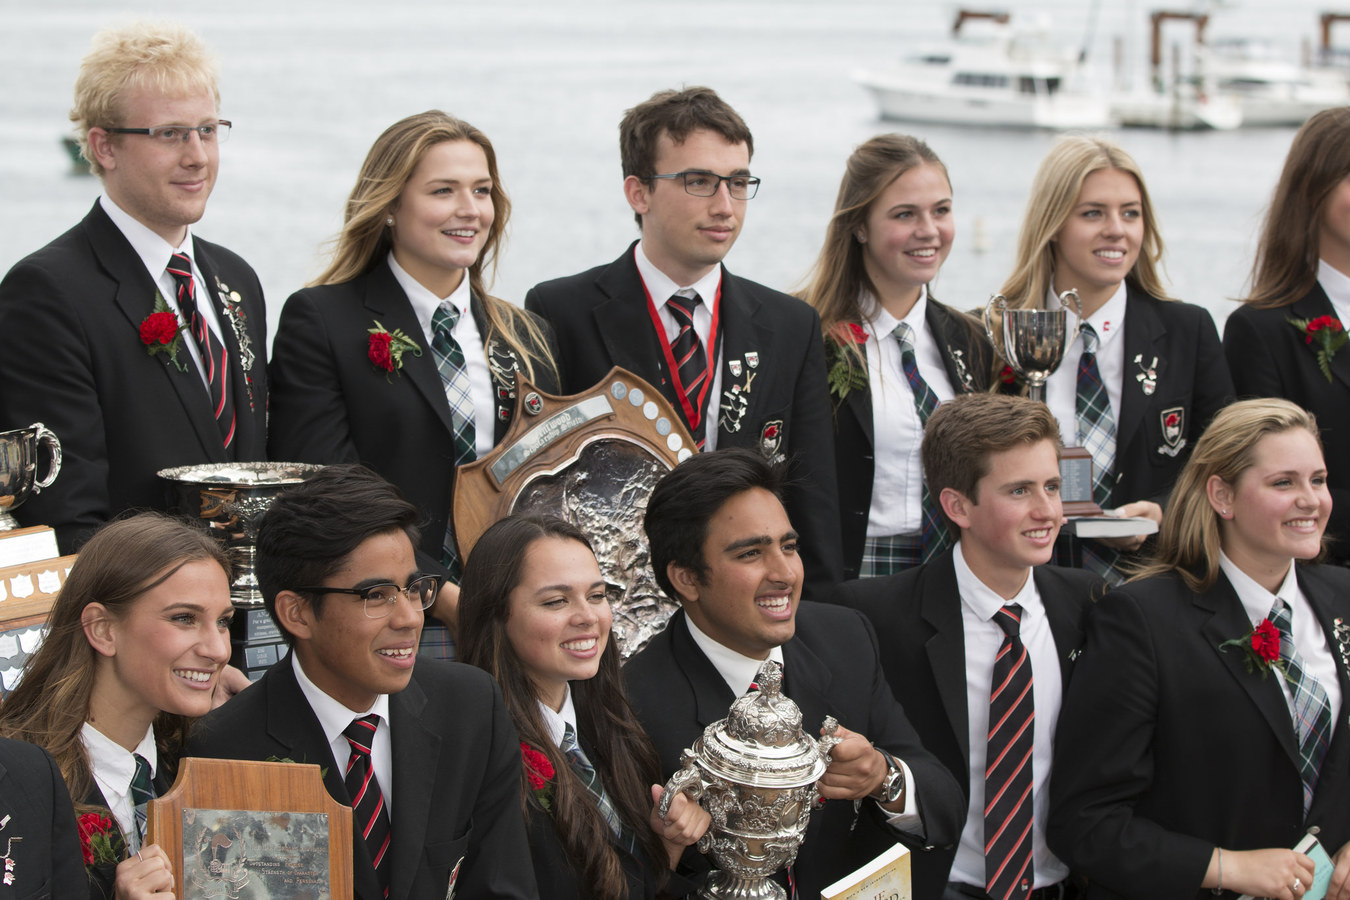 Brentwood College School - One of Canada's Best Boarding Schools